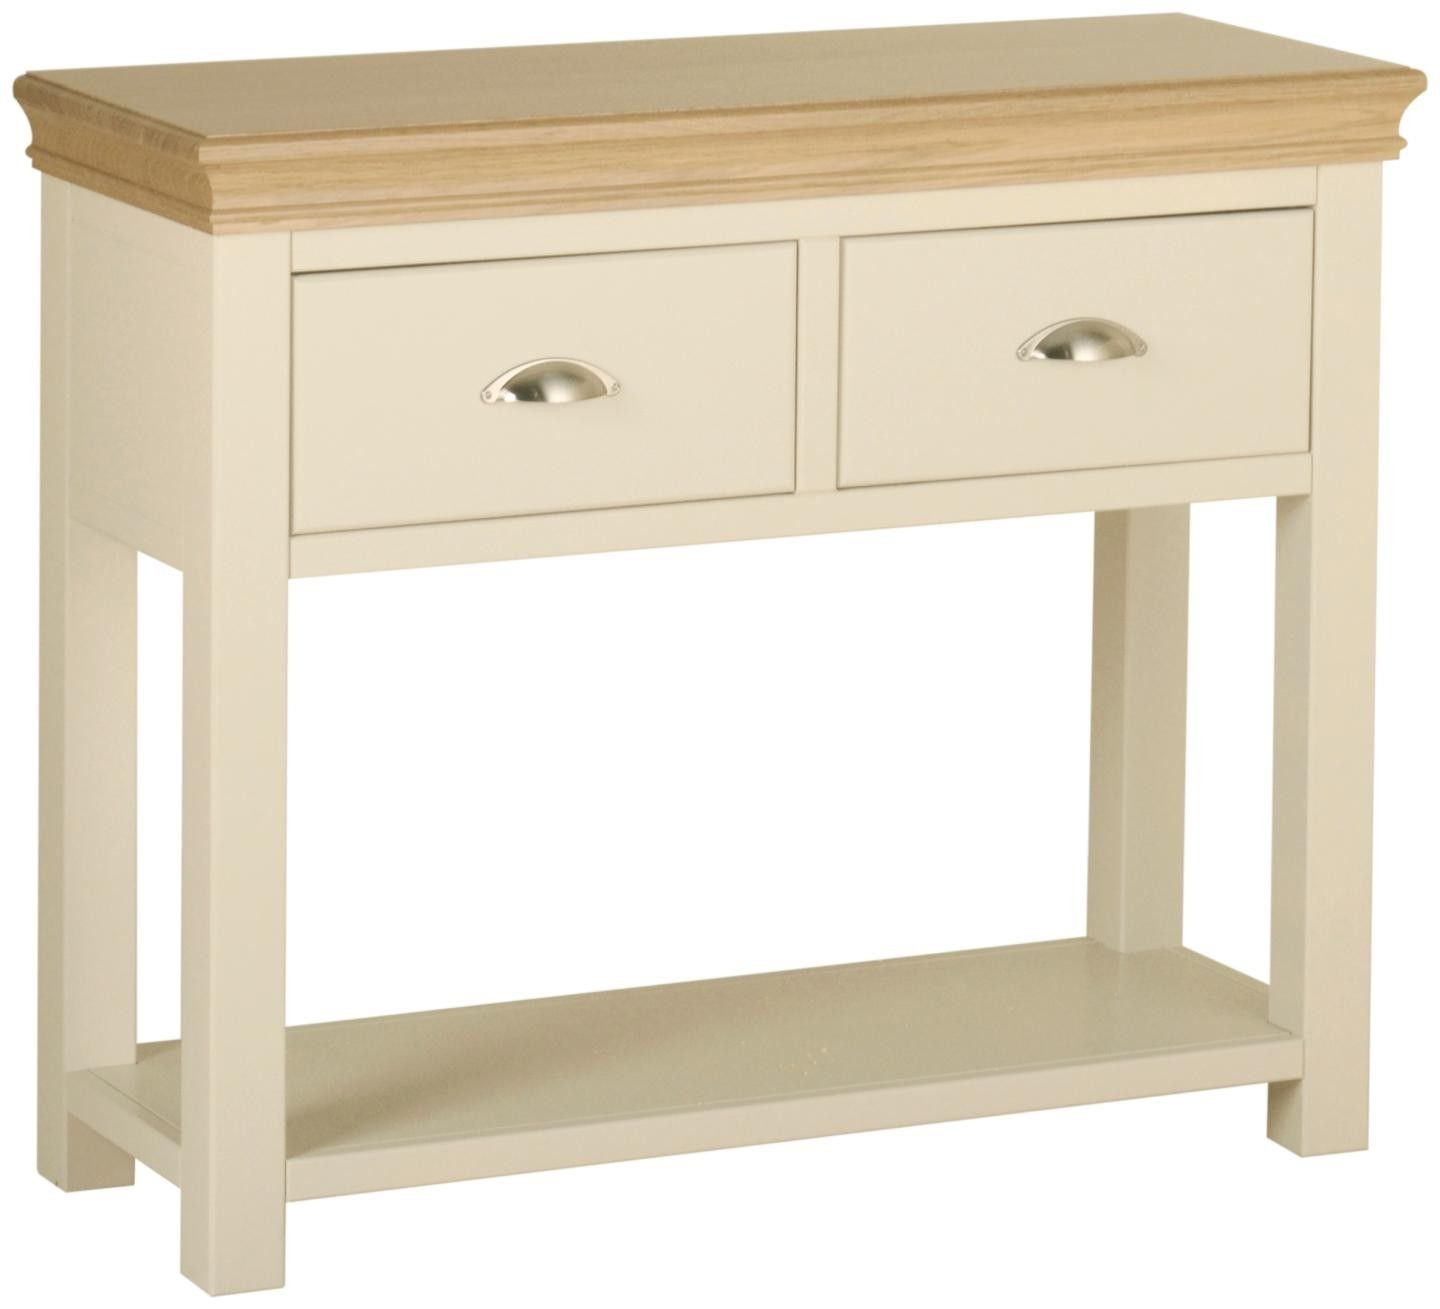 Emily 2 drawer console table painted ivory with oak tops emily 2 drawer console table painted ivory with oak tops geotapseo Choice Image